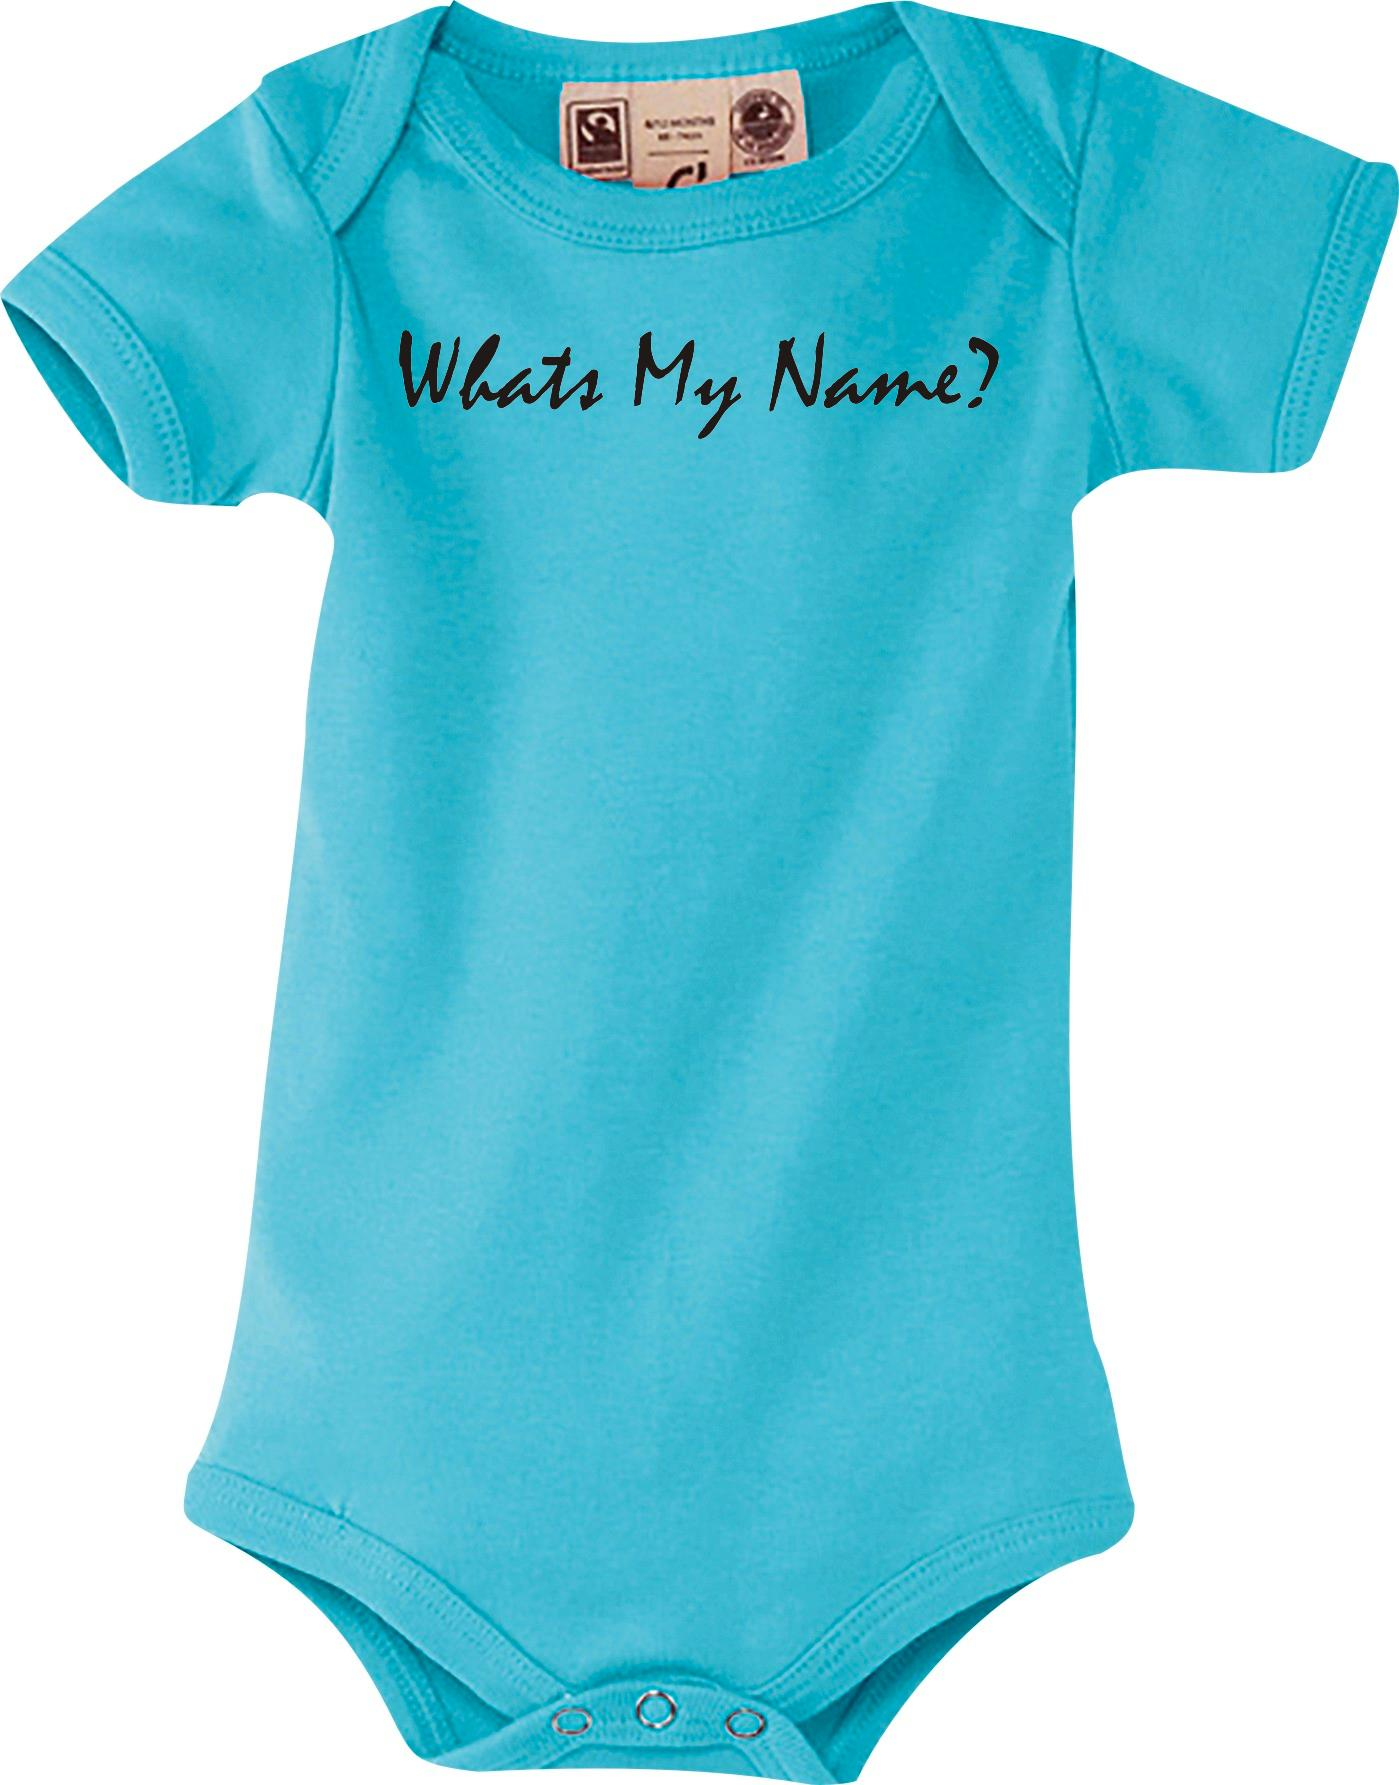 Baby-Body-BREAKING-BAD-HEISENBERG-White-Whats-My-Name-0-18-Monate